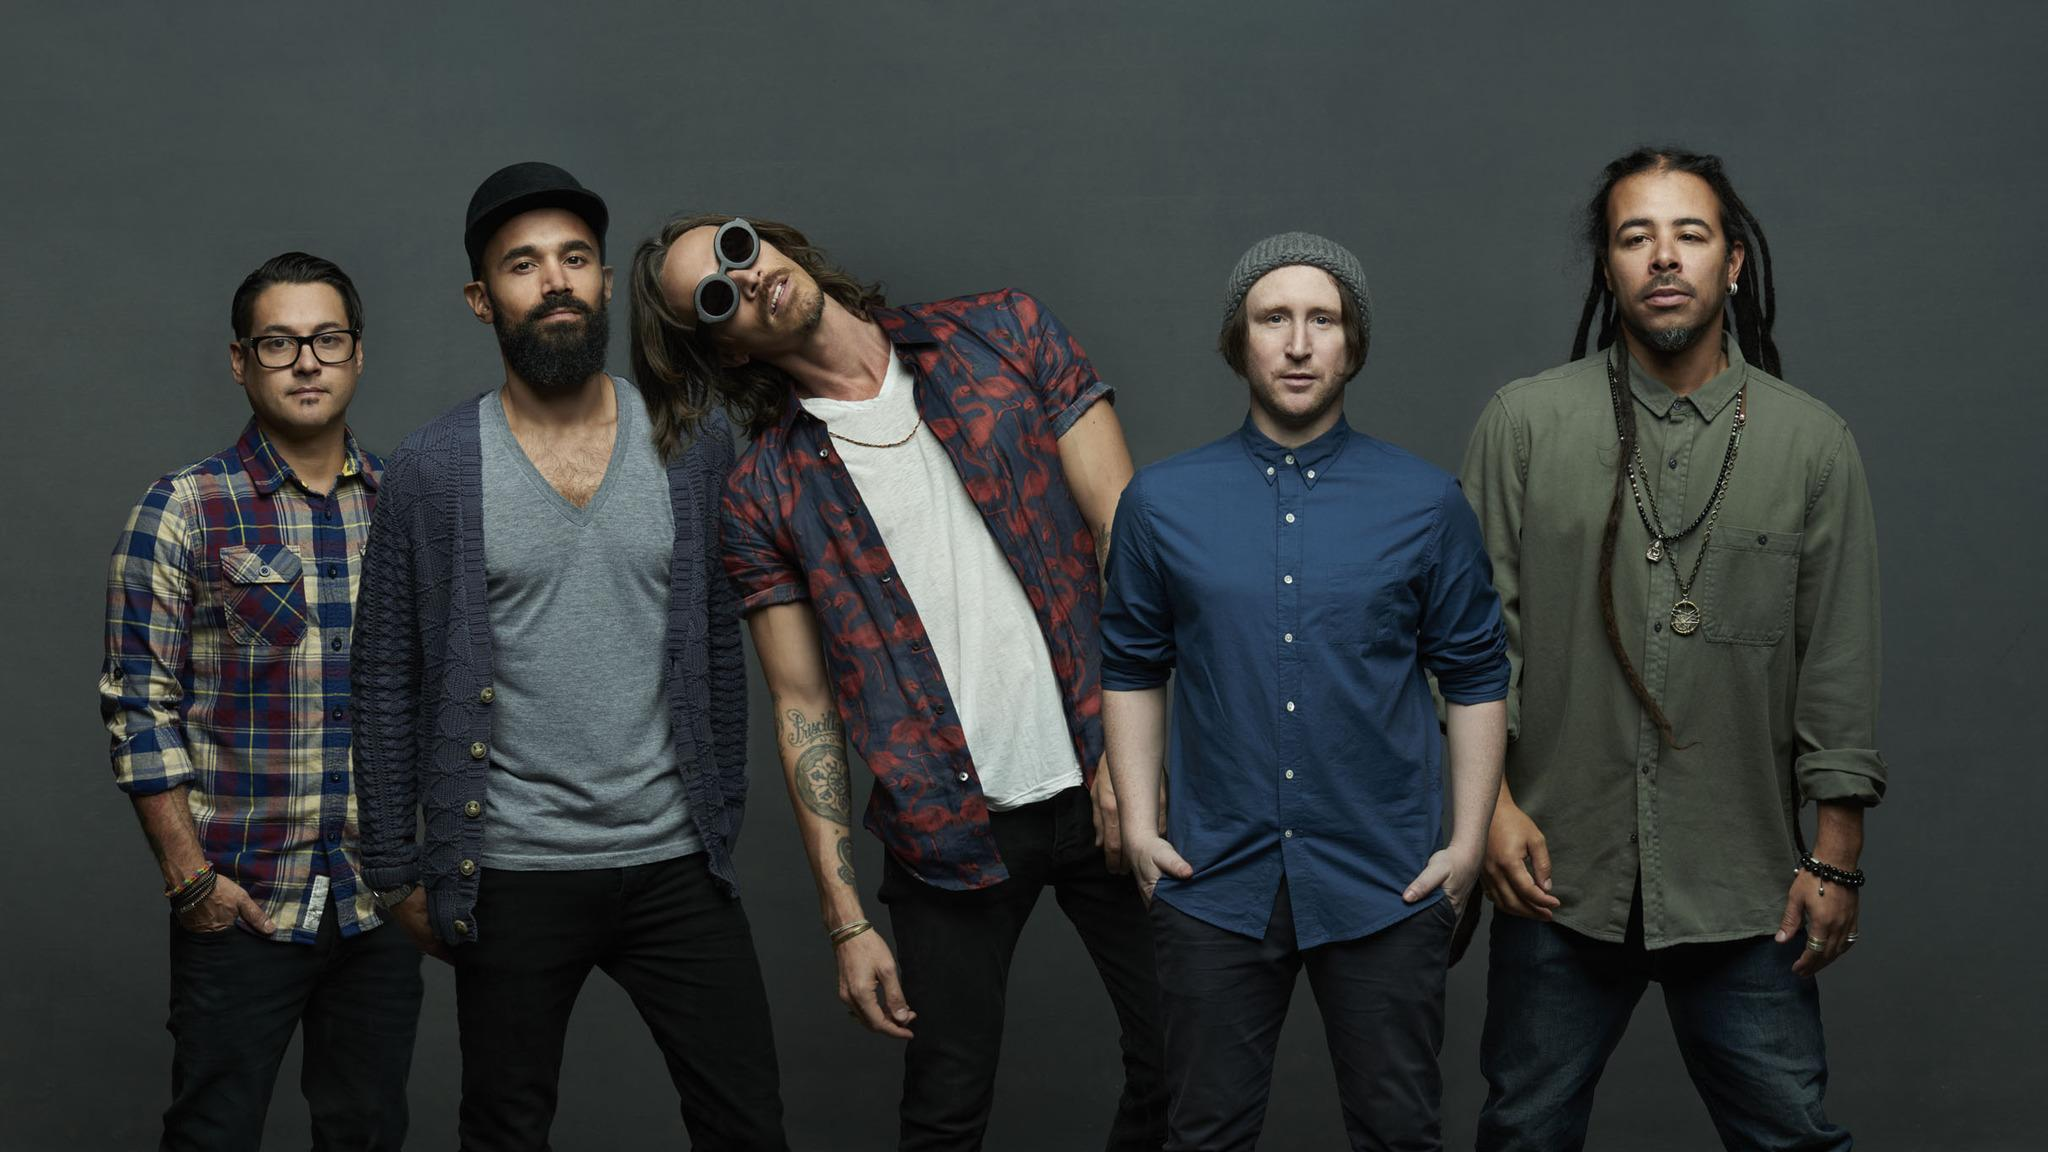 8 Tour - Incubus with special guests Jimmy Eat World - Mountain View, CA 94043